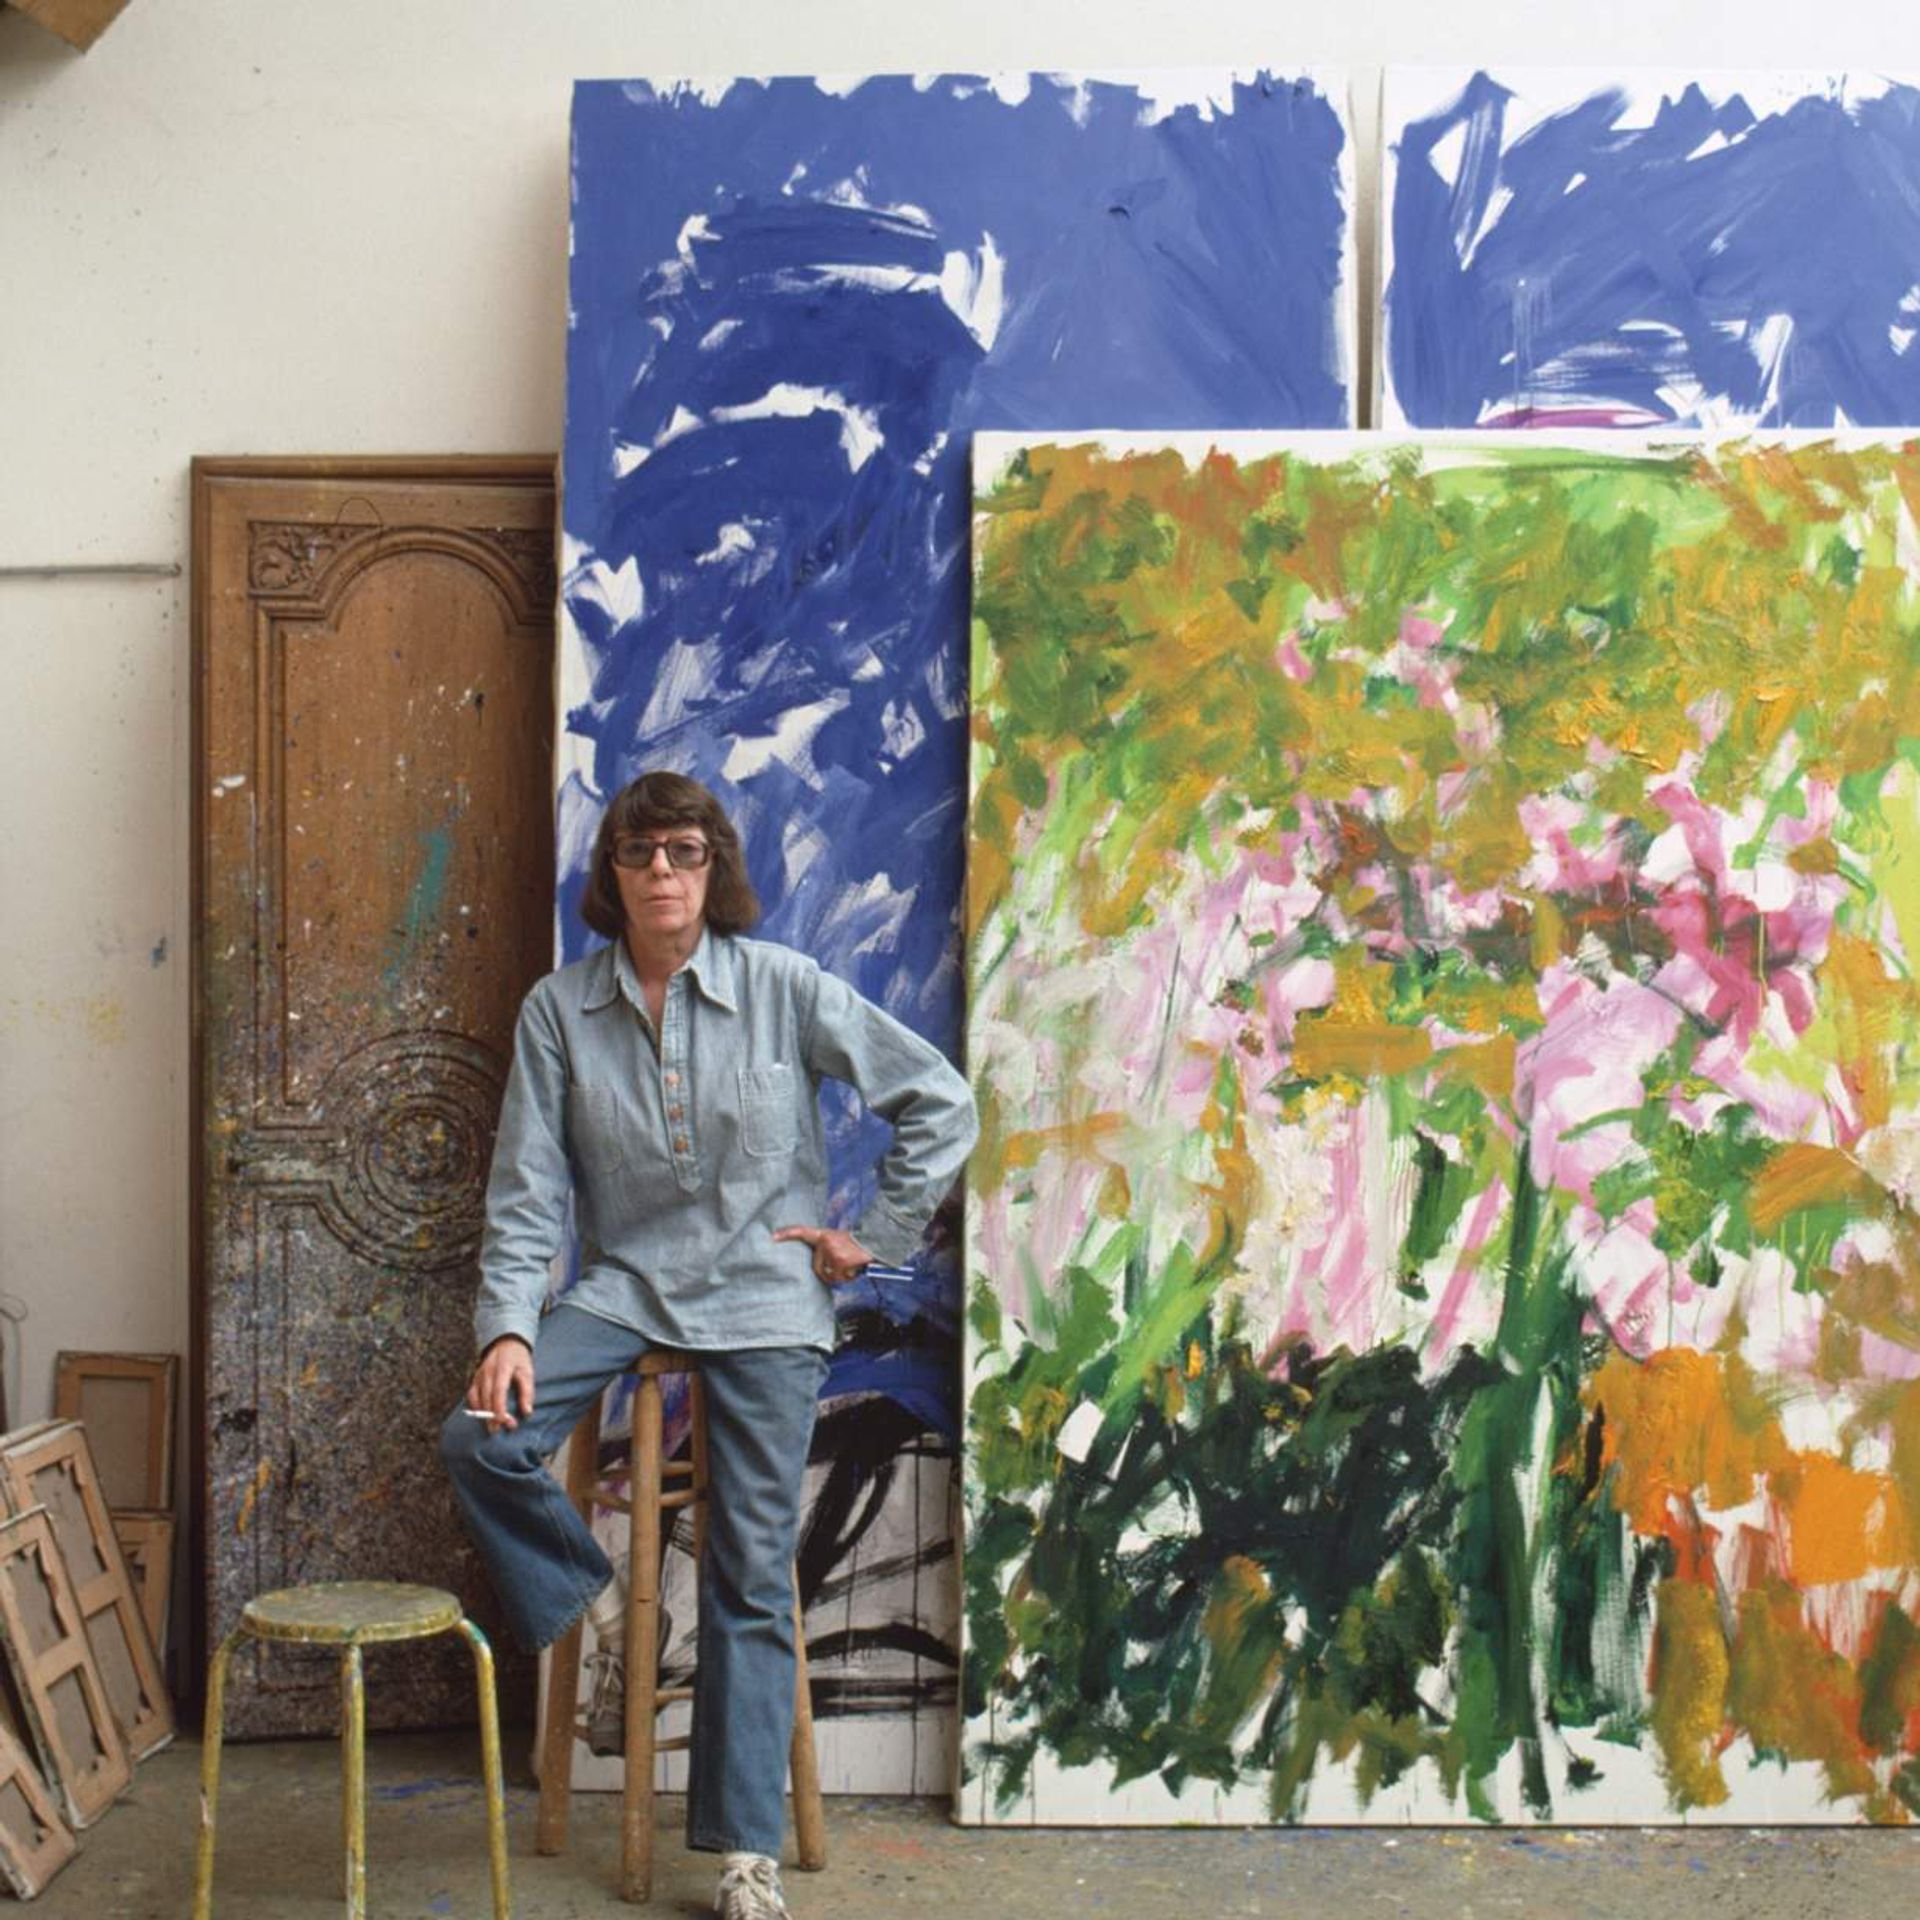 Joan Mitchell in her studio in Vétheuil, France, in 1983 Robert Freson, Joan Mitchell Foundation Archives/©Joan Mitchell Foundation